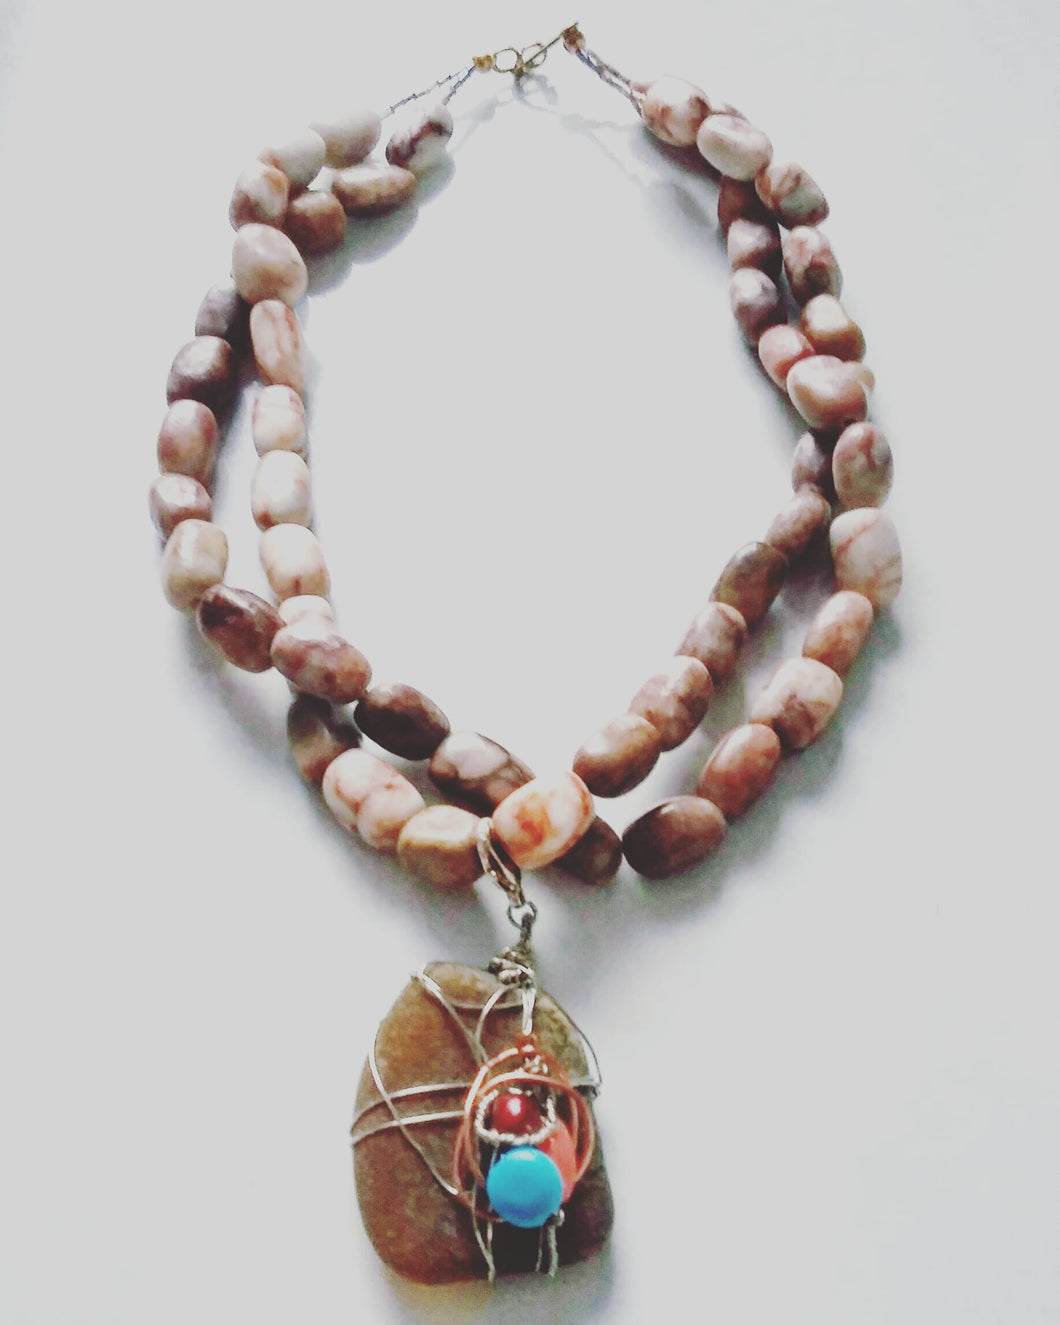 Double-Strand Pendant Necklace (Jasper & Sea Glass)